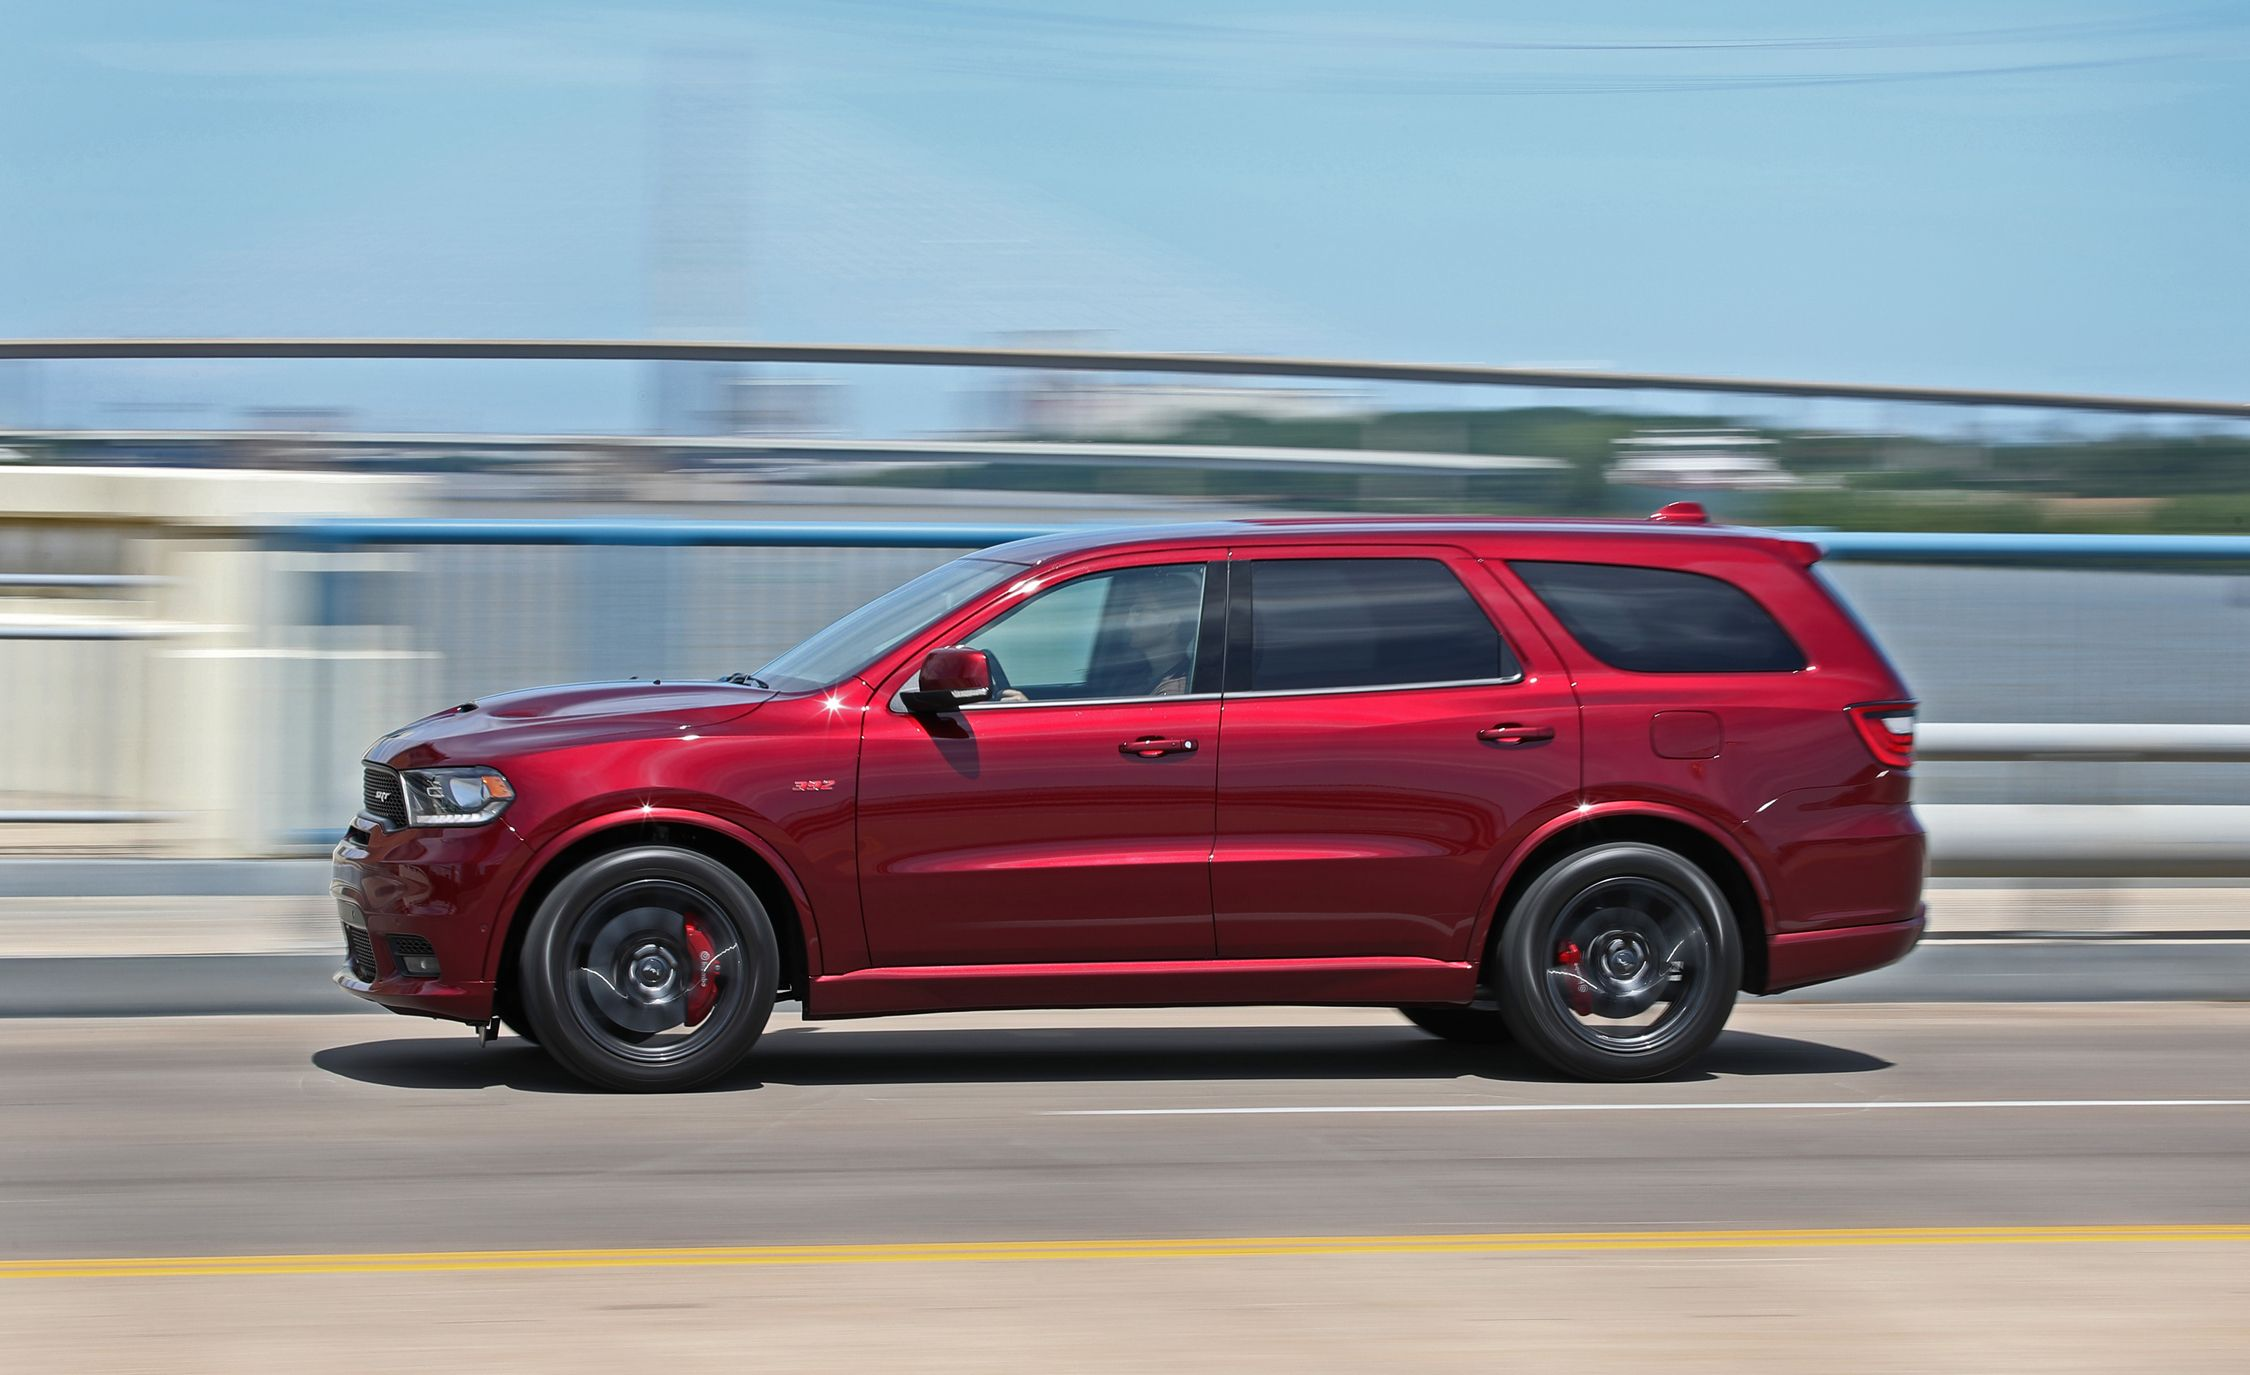 2018 Dodge Durango SRT   Fuel Economy and Driving Range Review   Car and Driver